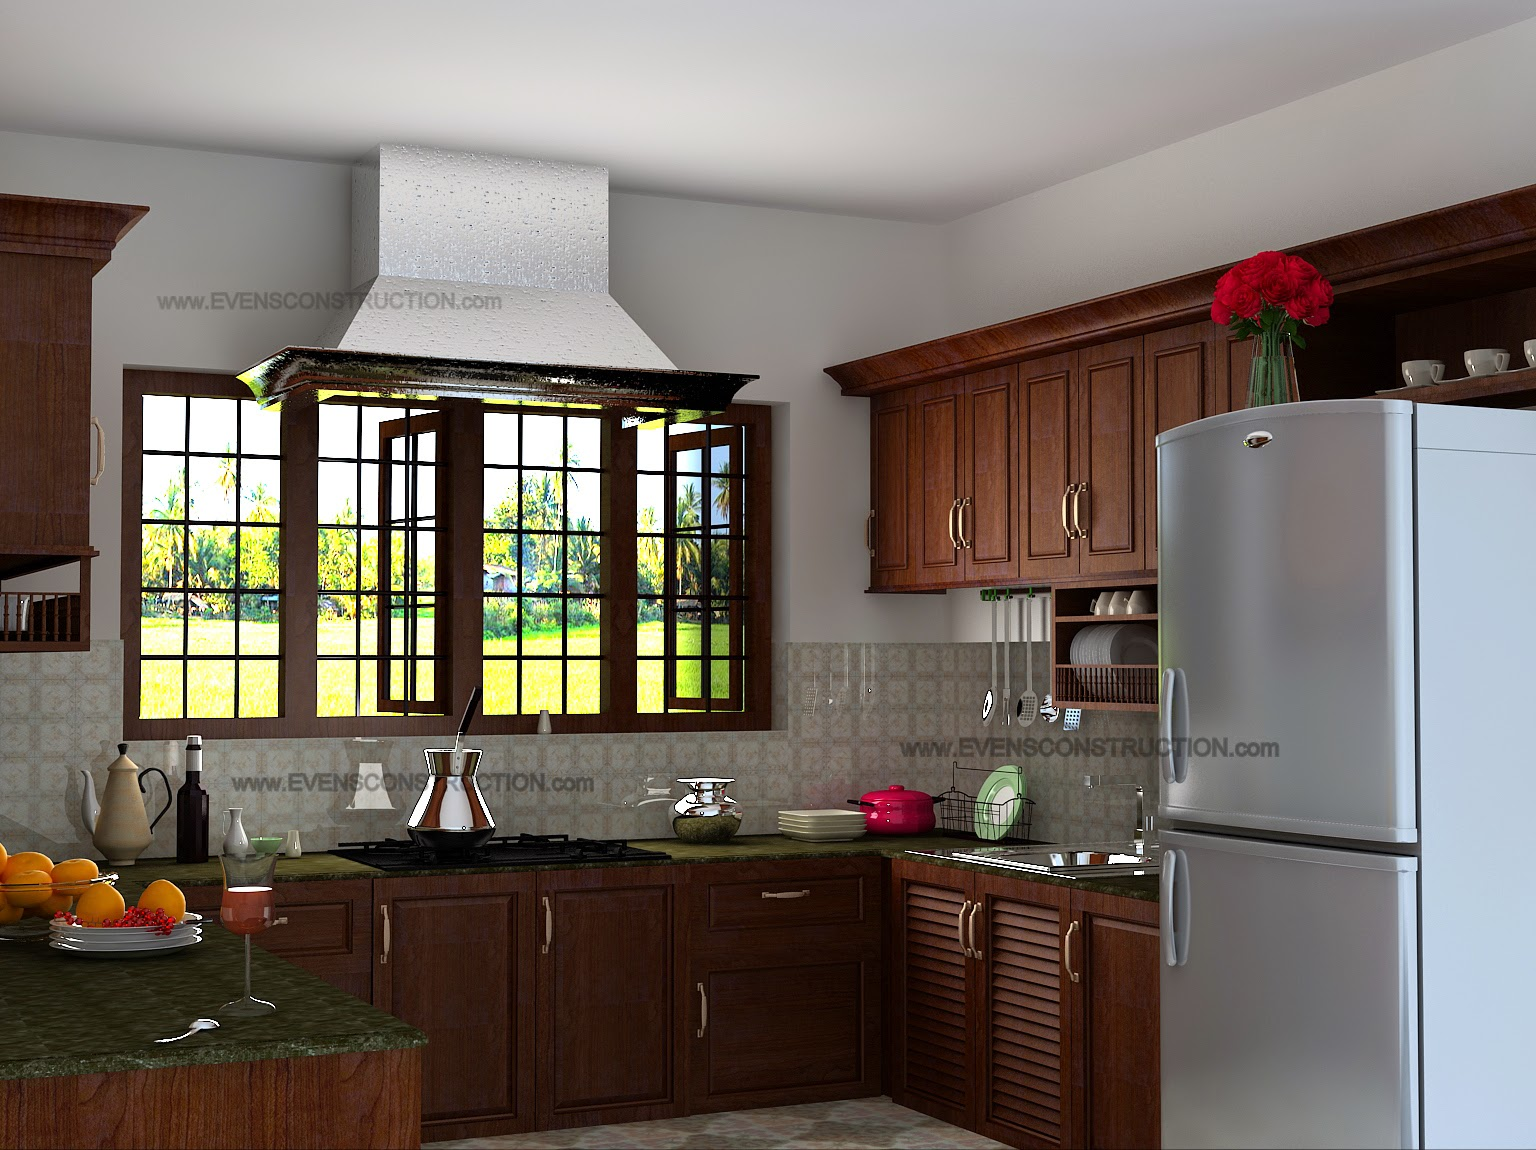 Evens Construction Pvt Ltd: Beautiful kitchen interior